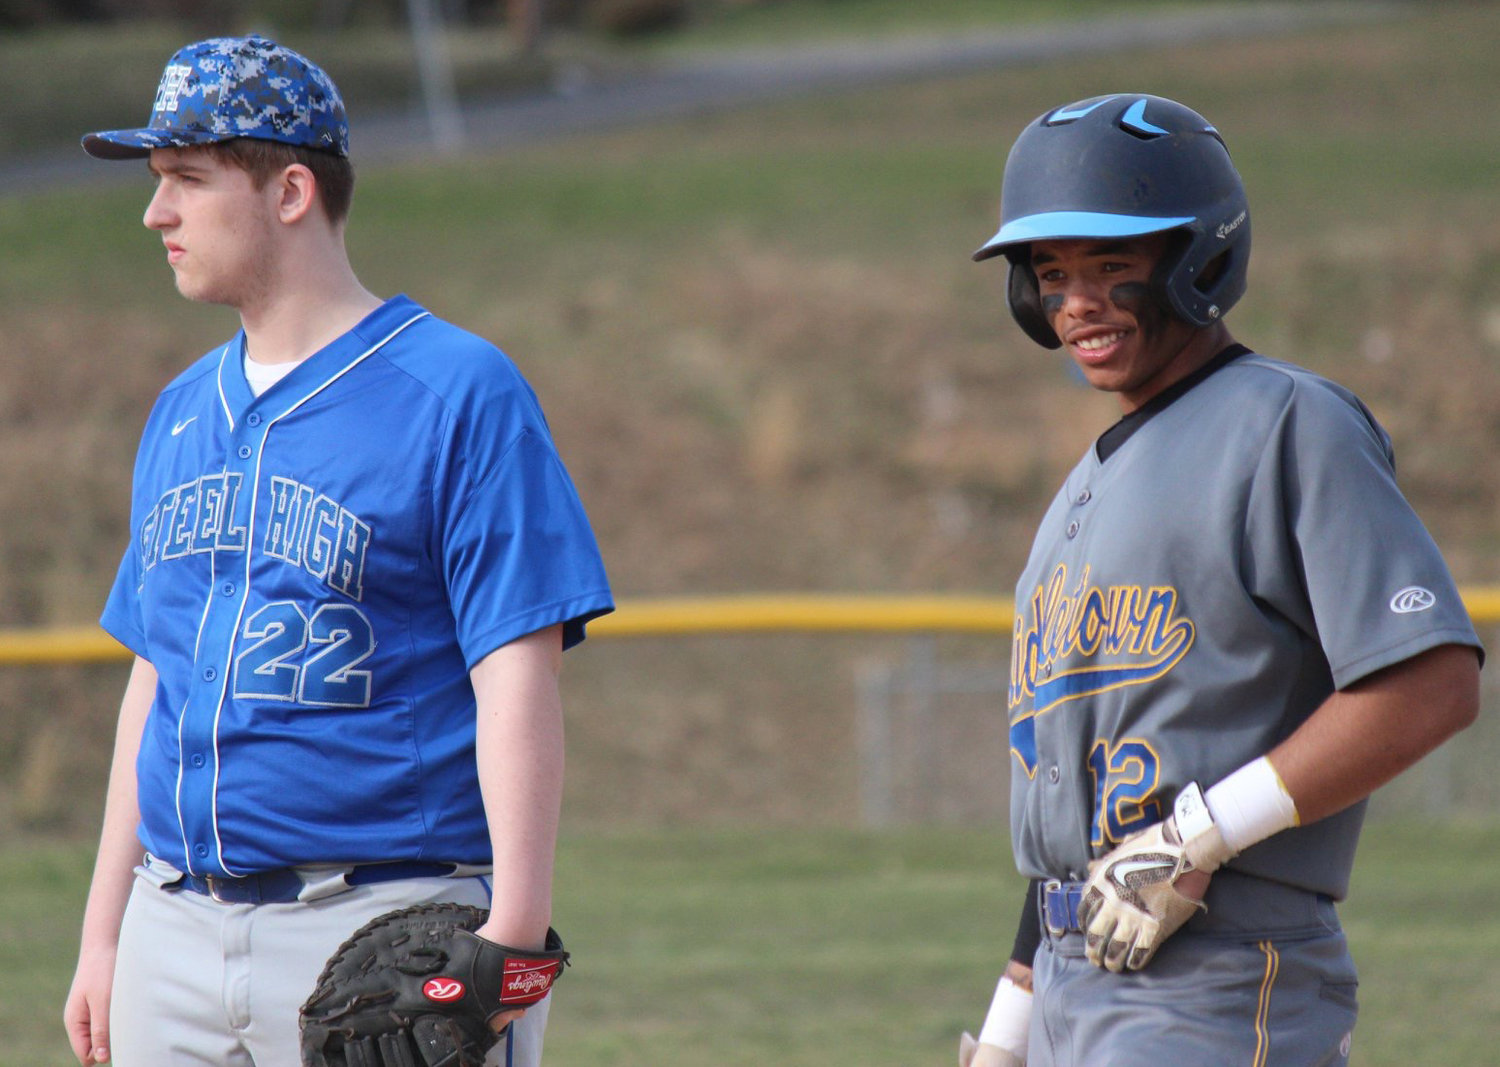 Avery Williams leads off first base April 4 in the Blue Raiders' game at Steelton-Highspire.